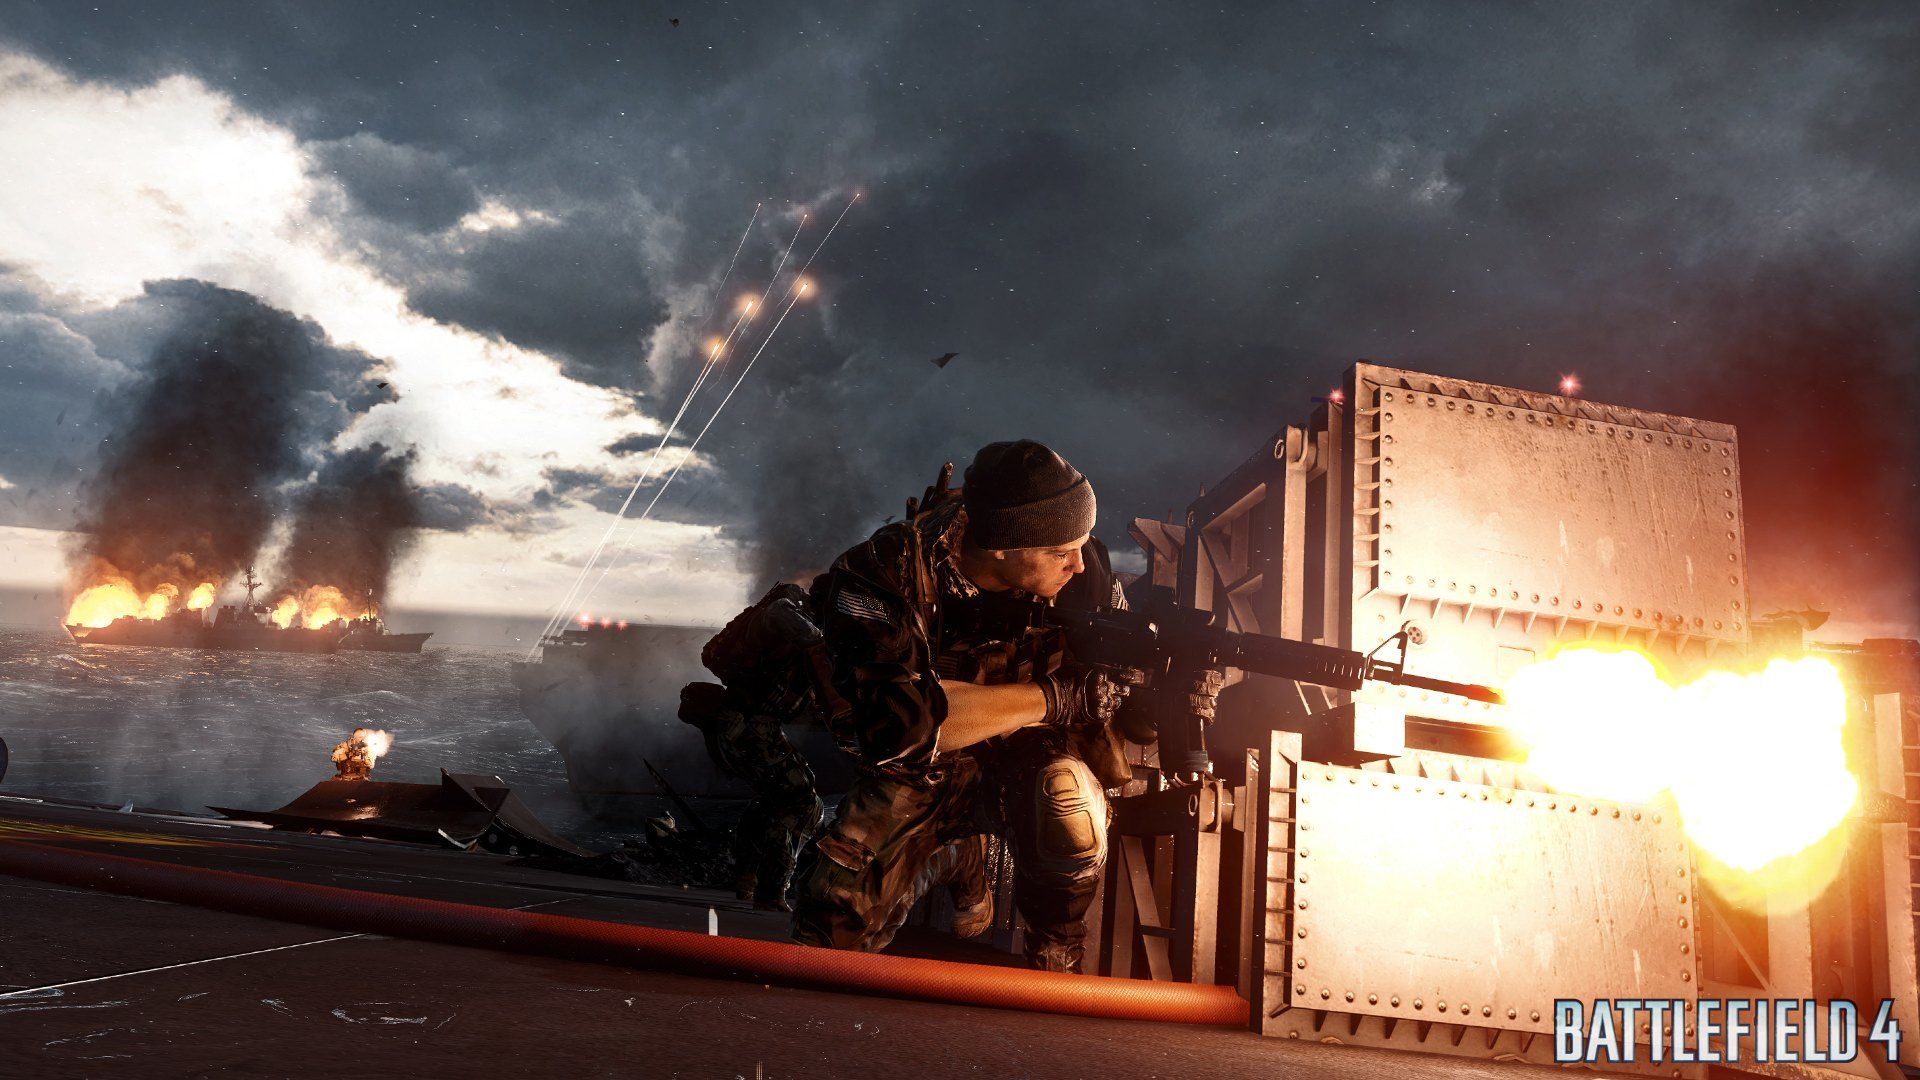 Dice Releases Battlefield 4 Pc System Requirements Battlefield 4